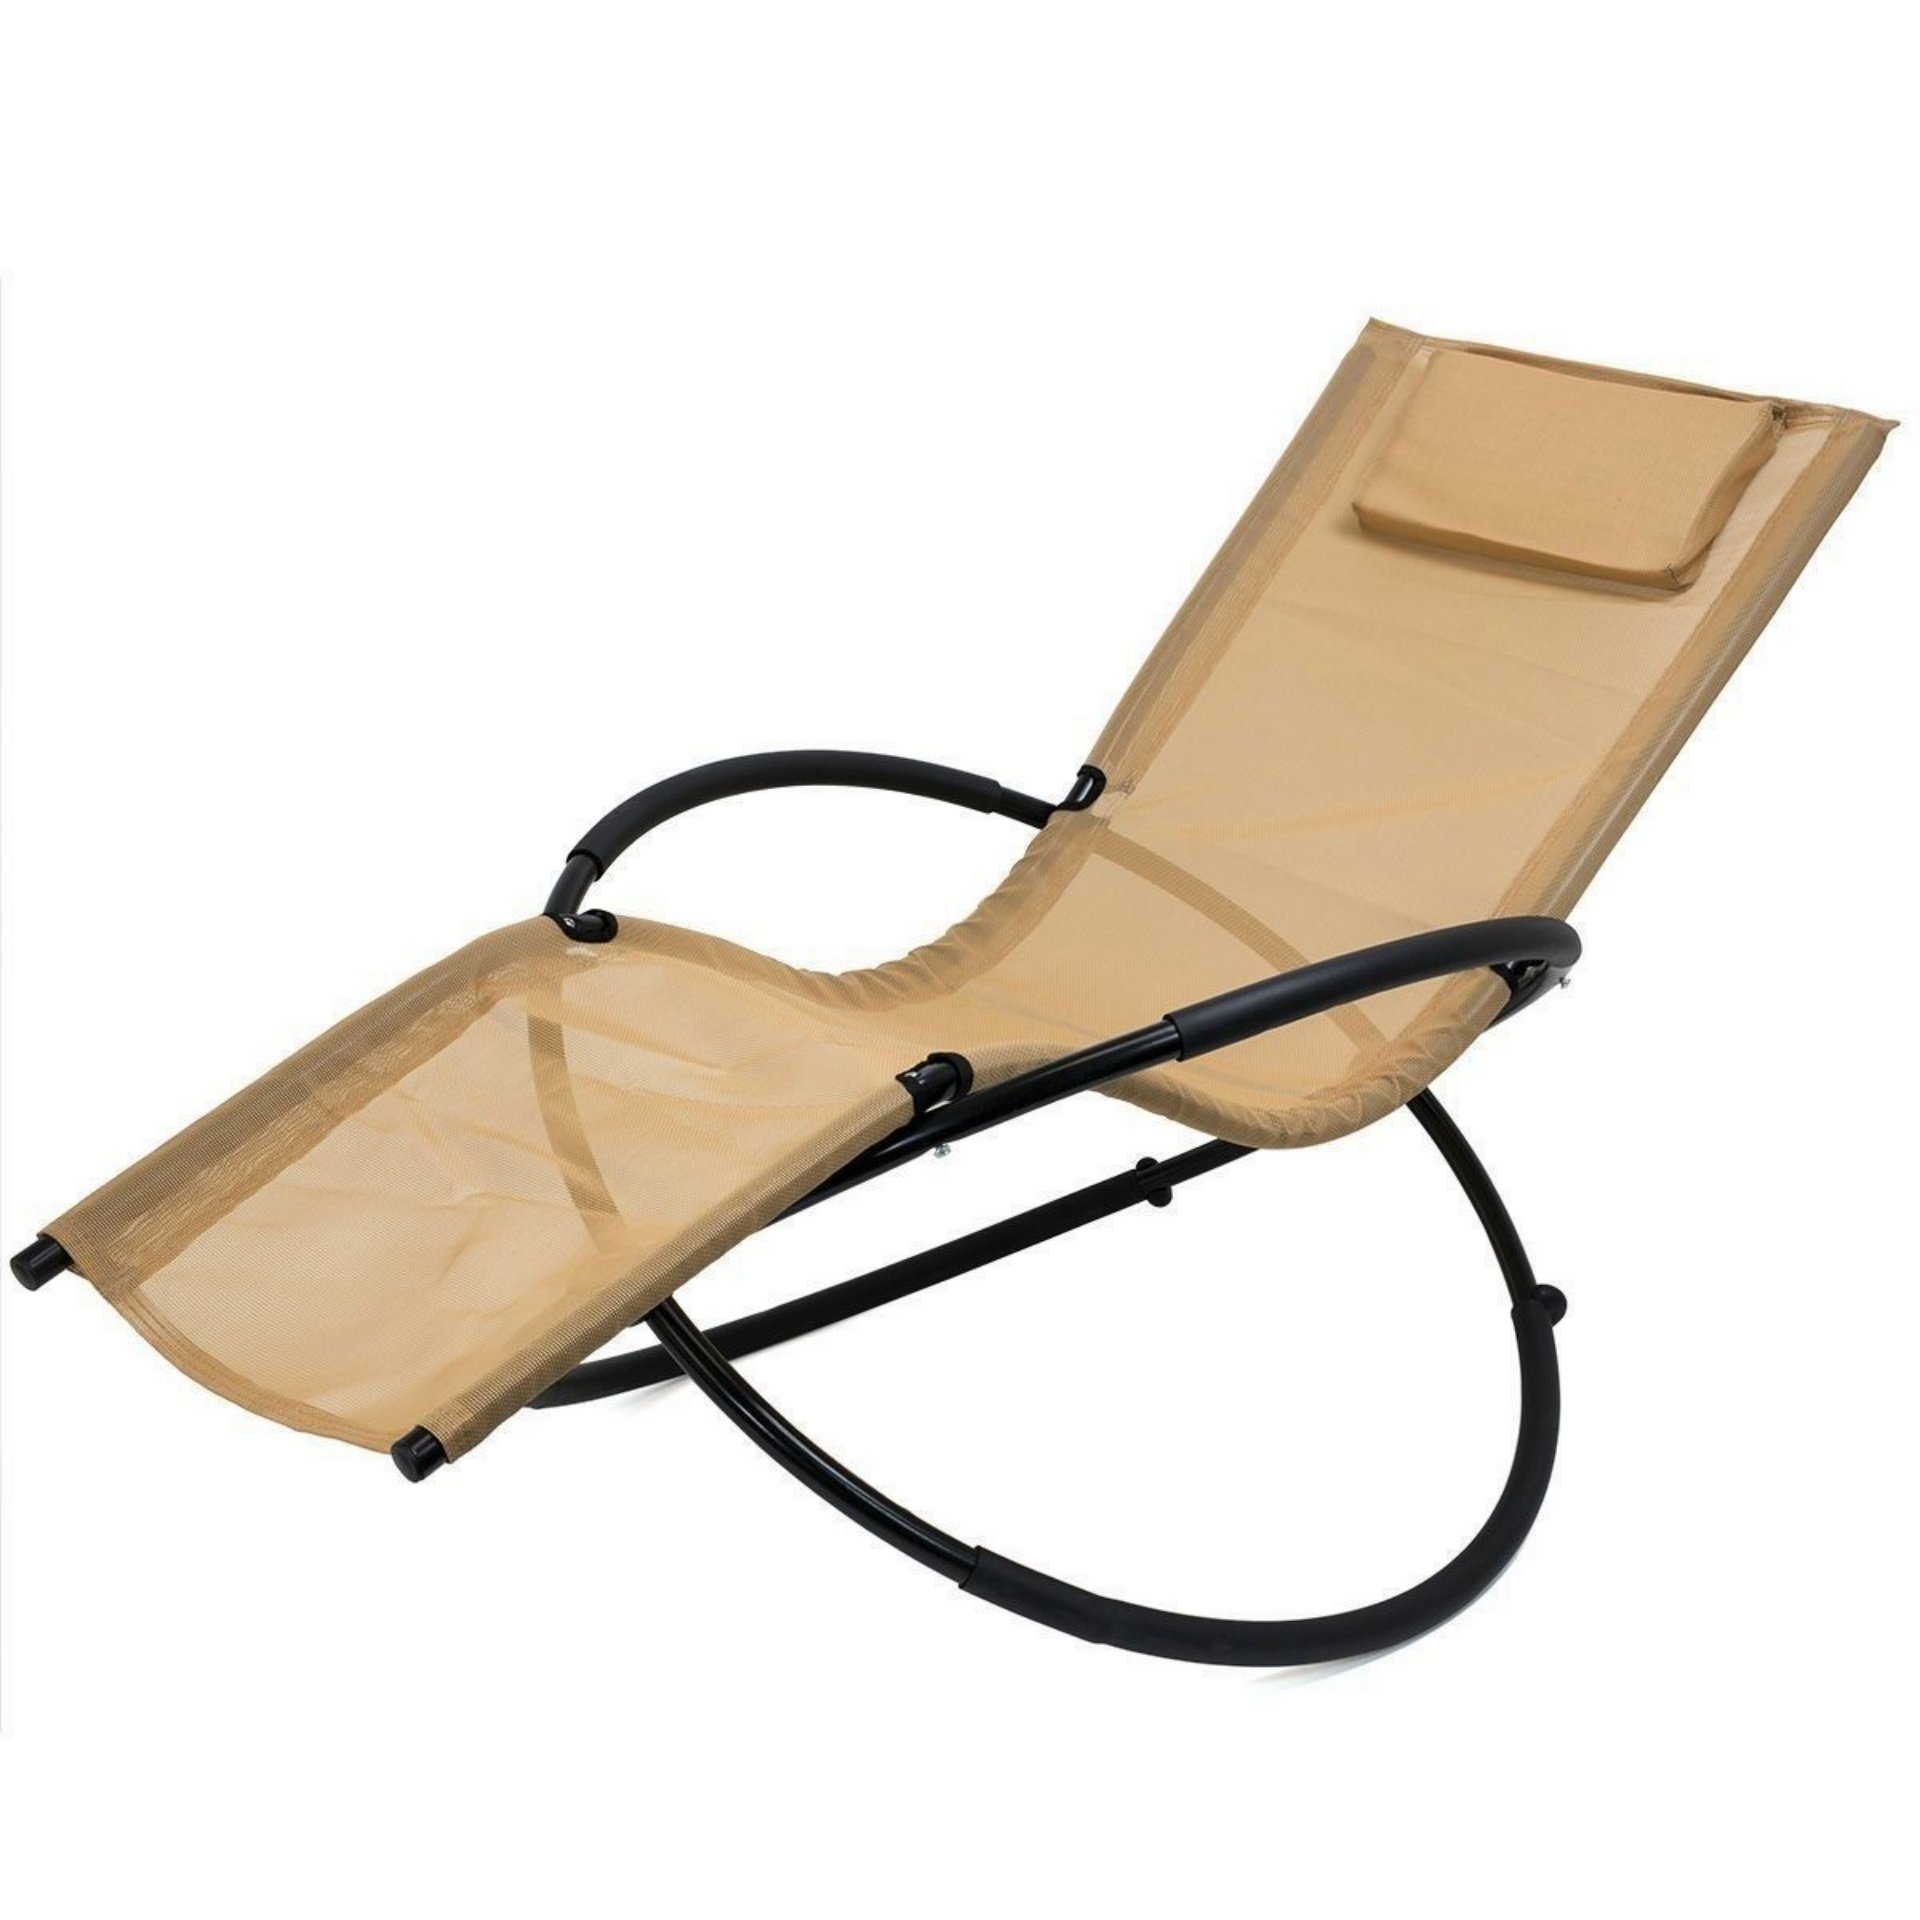 Zero Gravity Folding Orbit Chair Patio Lounger Reclining Rocking Relax Outdoor Tan #236 by koonlertshop